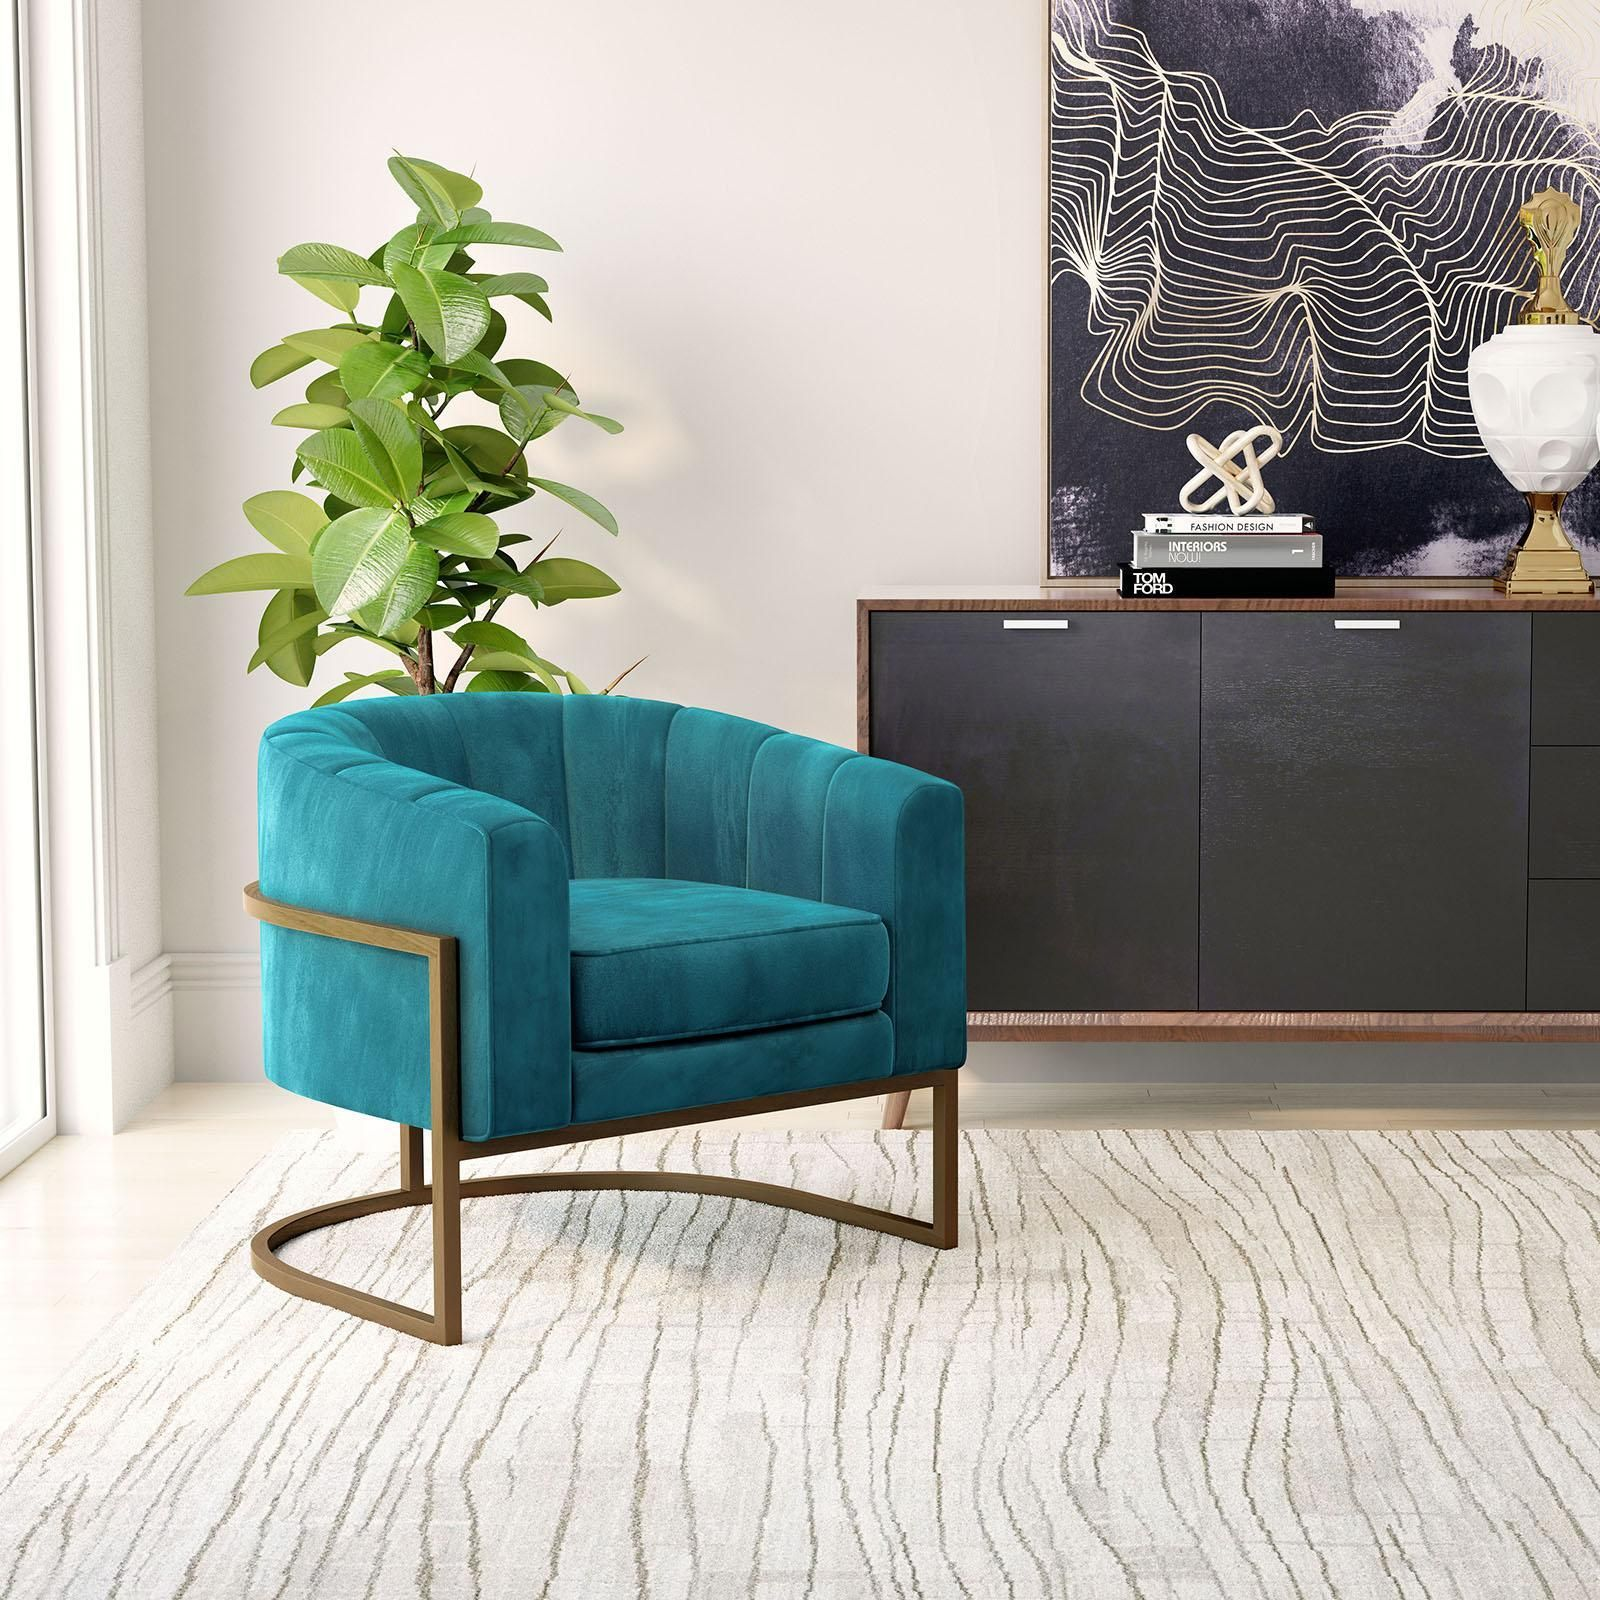 Our Plush Velvet Chair Is On Your Must Have List On Trend And Simply Sublime With A Channele Occasional Chairs Blue Occasional Chair Single Living Room Chairs #occasional #living #room #chairs